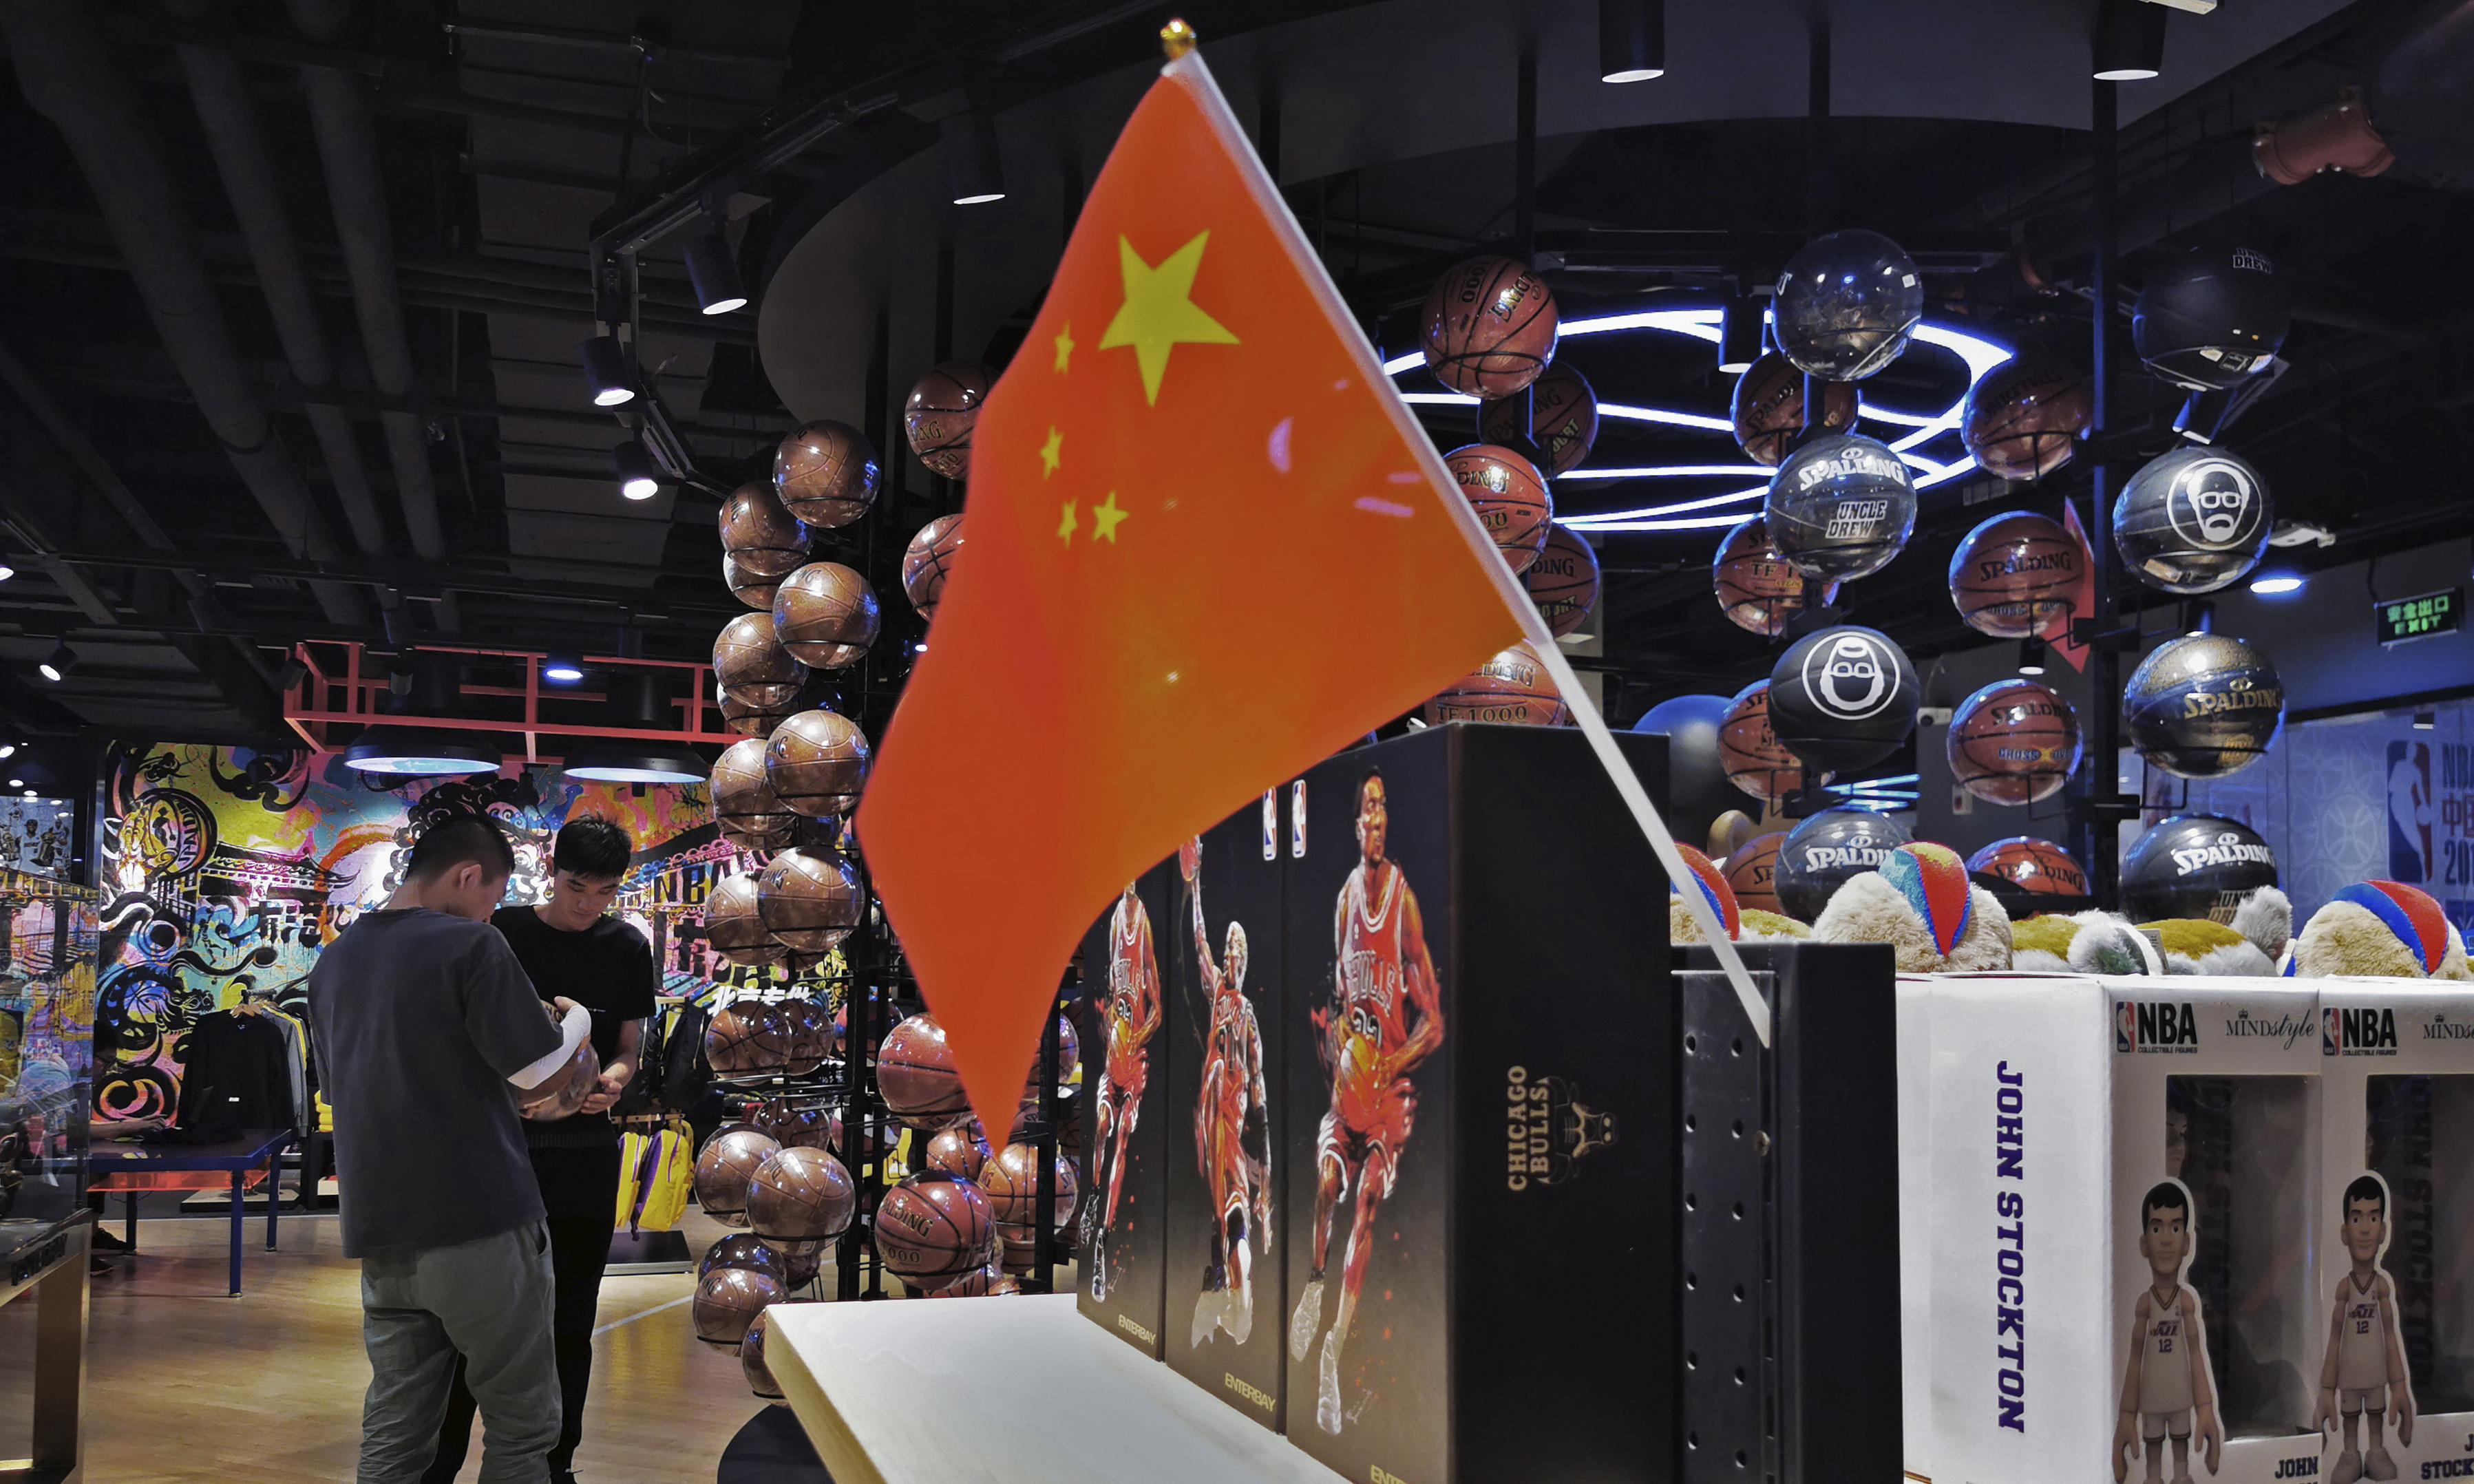 Western tech giants must stop kowtowing to China's bullying